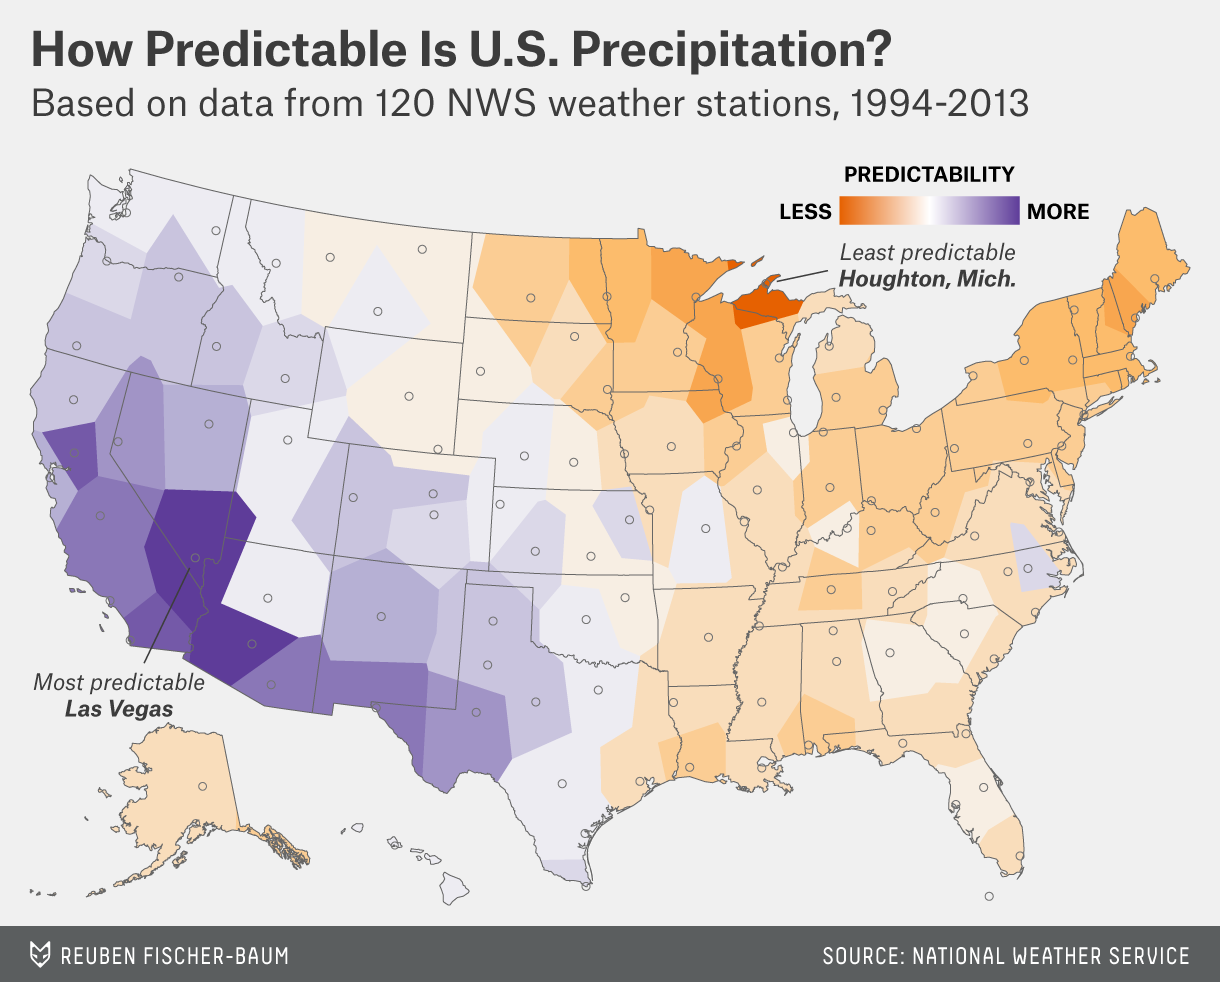 Which City Has The Most Unpredictable Weather? | FiveThirtyEight on simple map of washington state, usda soil maps minnesota, eastern minnesota, current weather map minnesota, rural minnesota, northeastern minnesota, waskish minnesota, growing zones in minnesota, trees native to minnesota, catholis churches coon rapids minnesota, simple idaho map, sulfide mining in minnesota, garden zone map for minnesota, summer climate in minnesota,